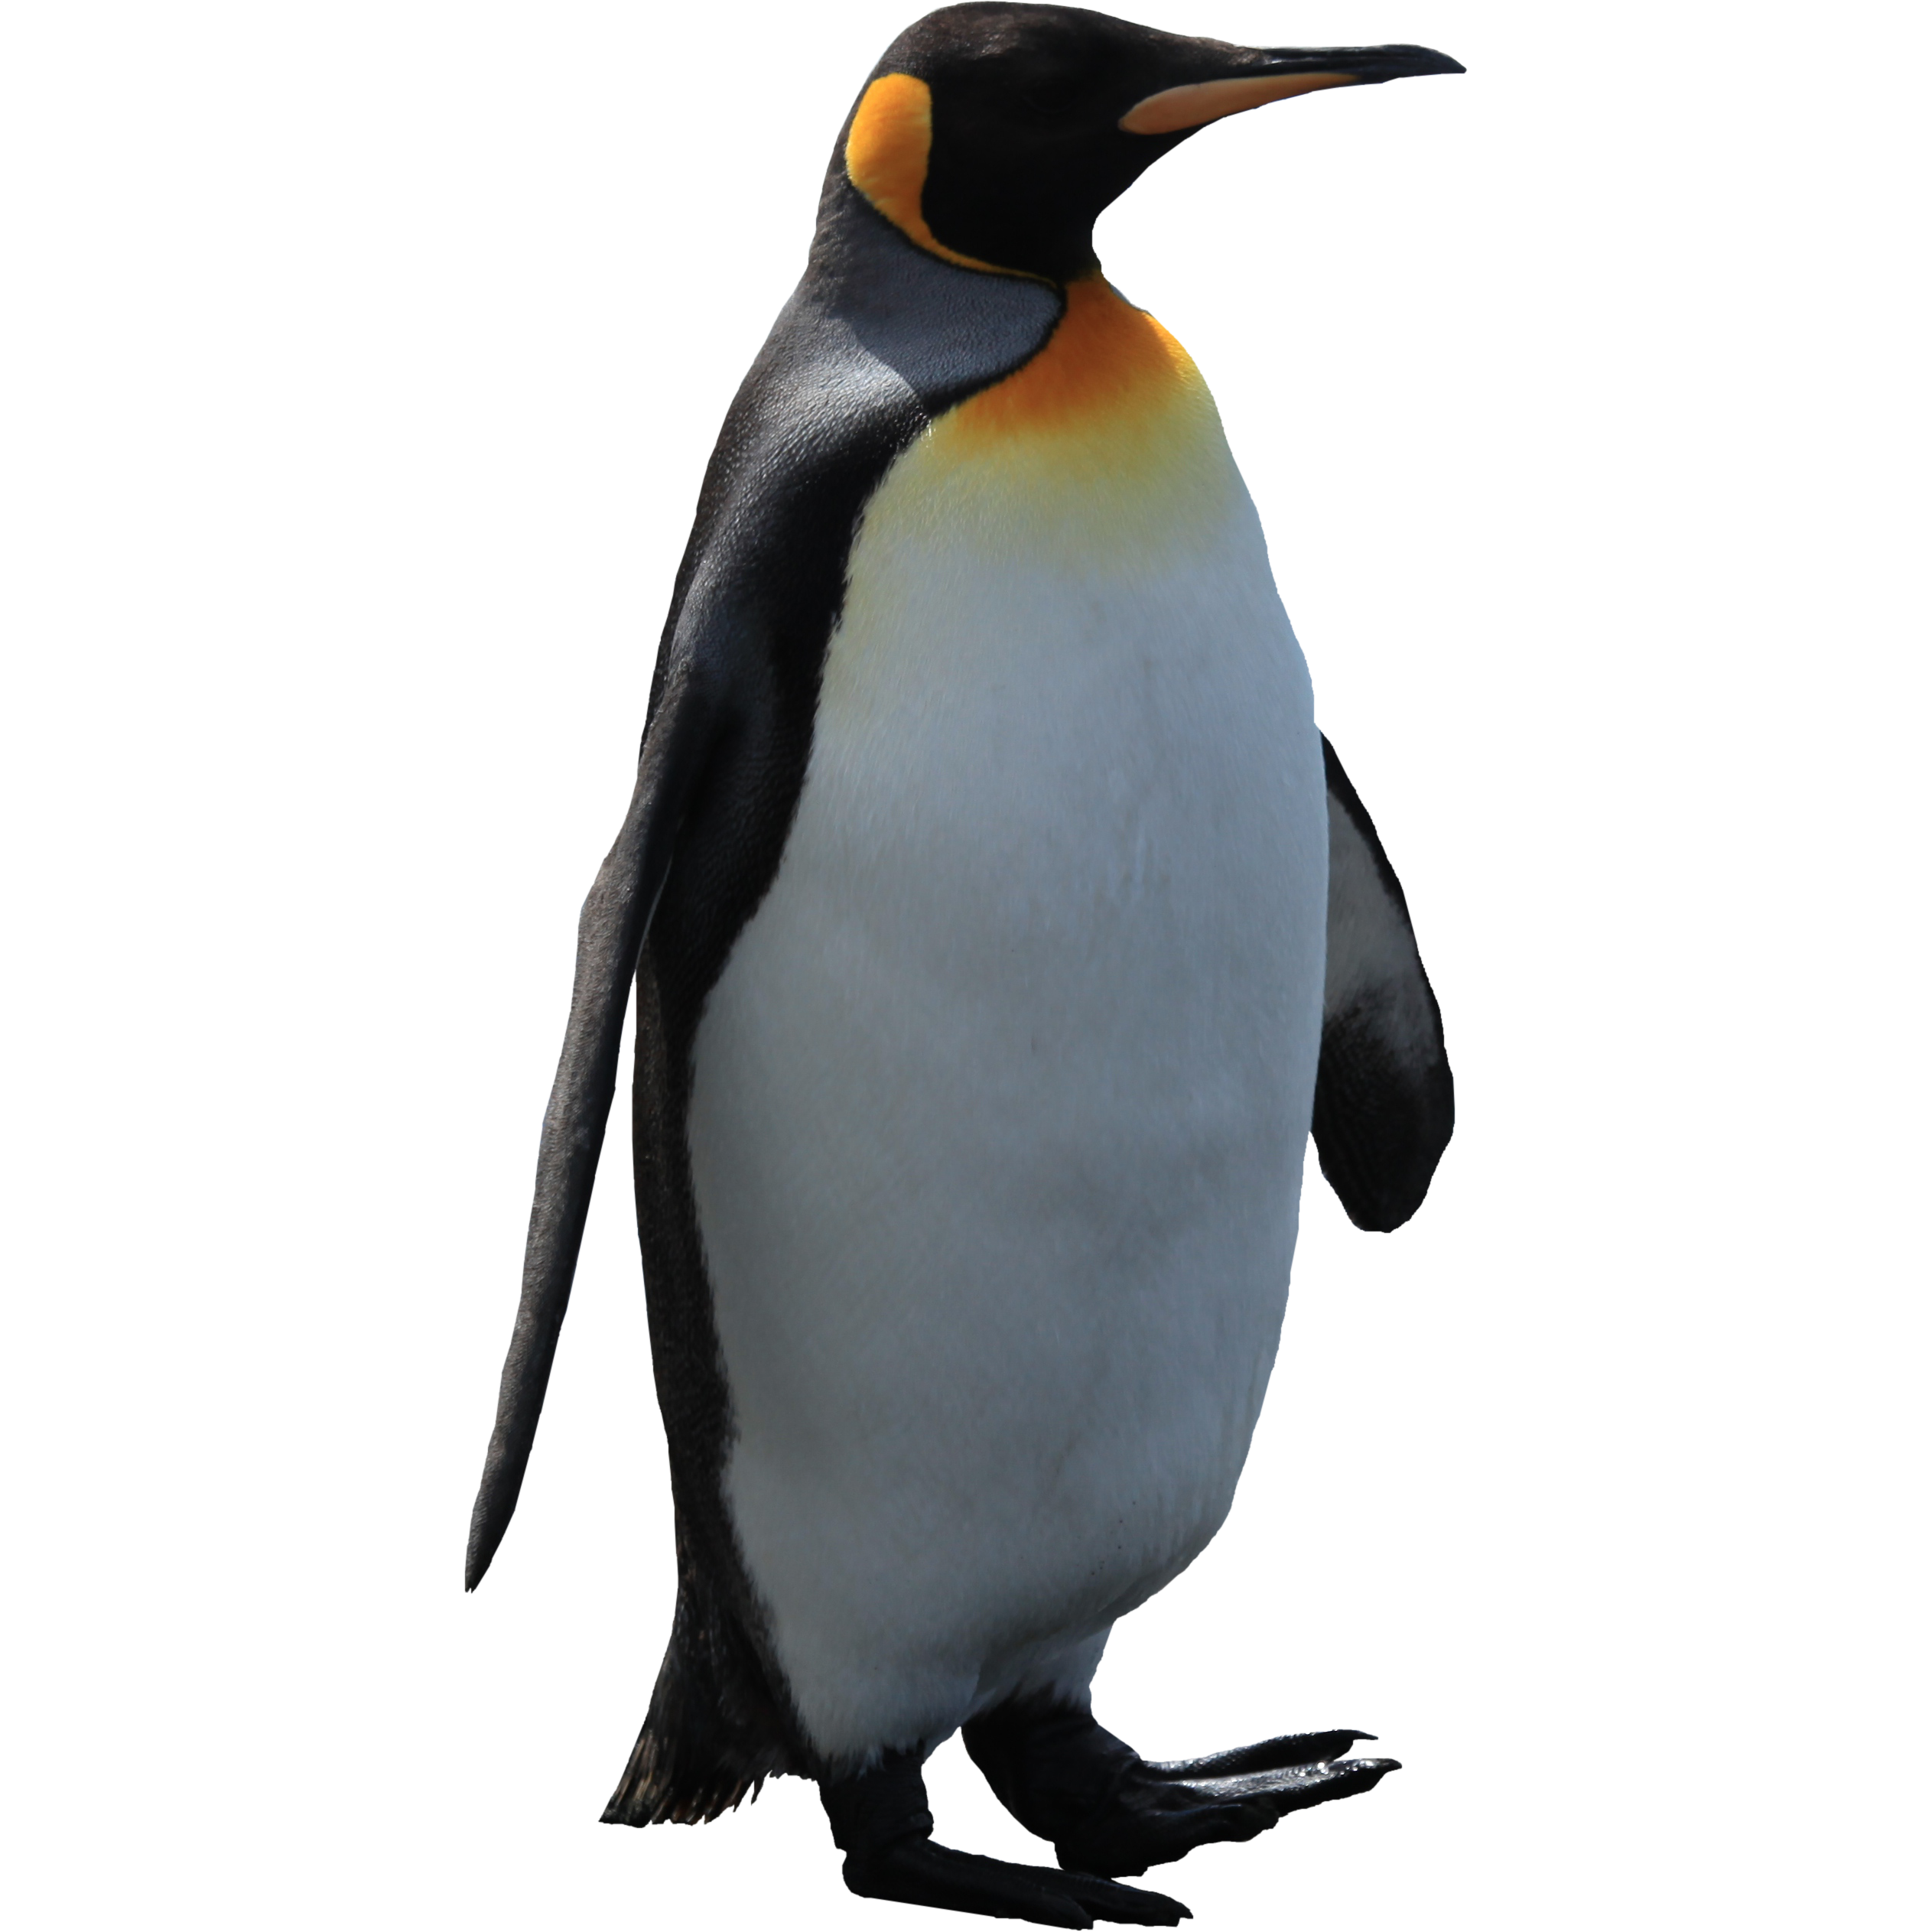 Free download of Penguins Icon Clipart